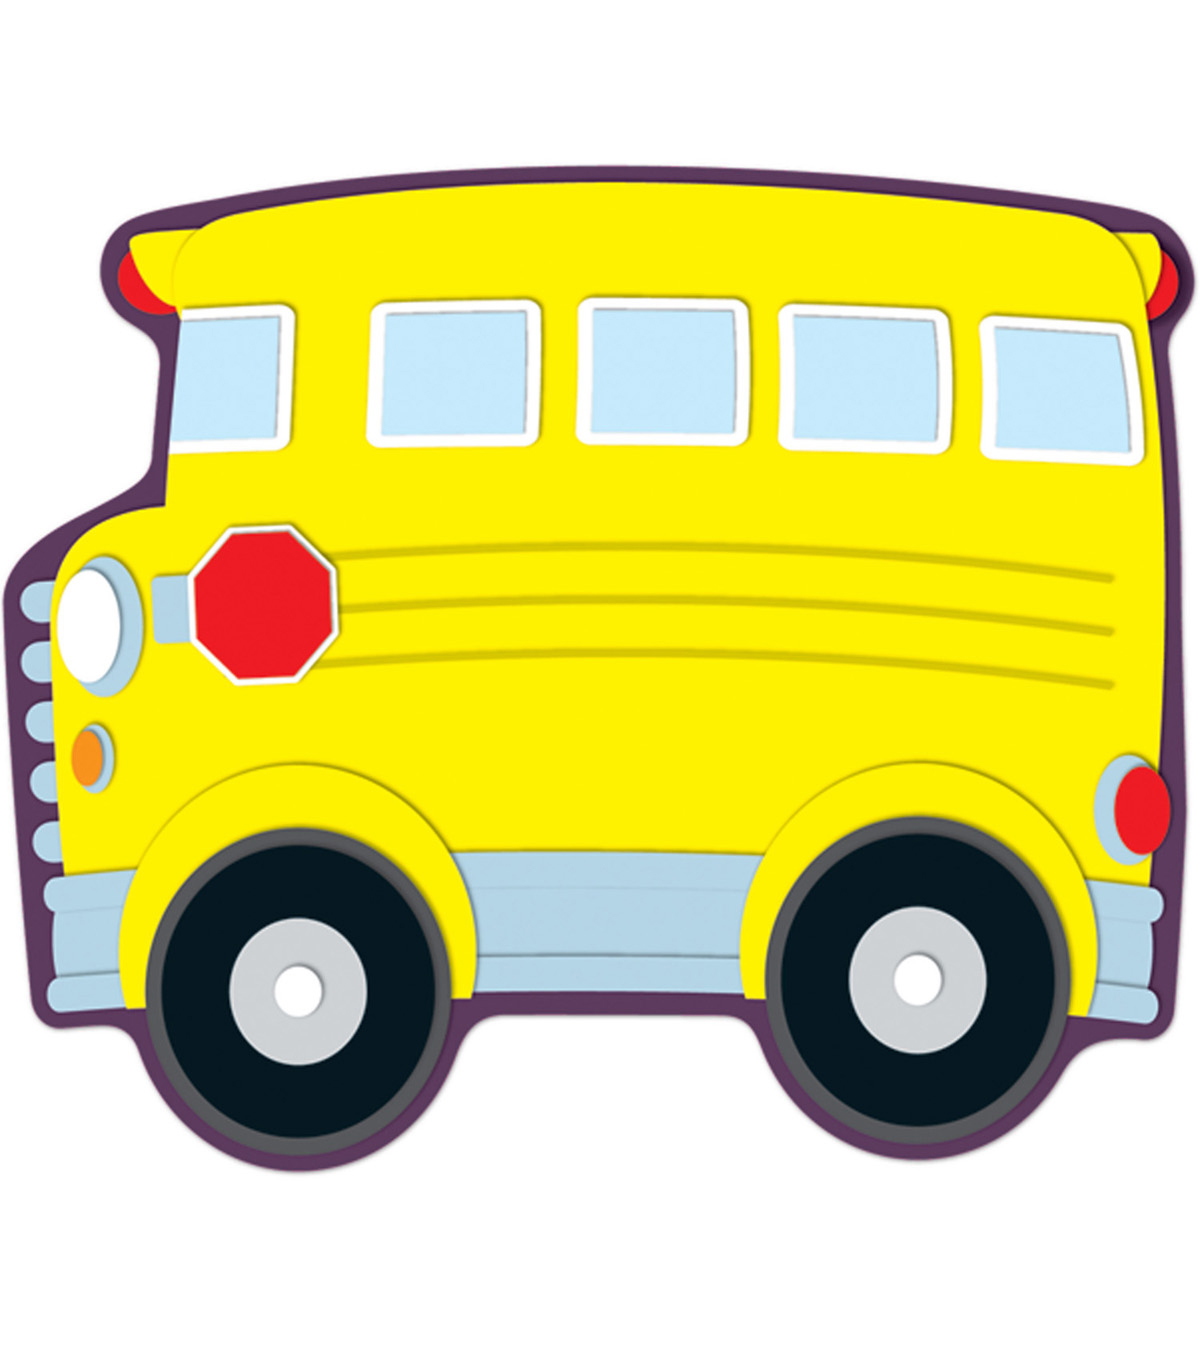 School Bus Accents 36/pk, Set Of 6 Packs